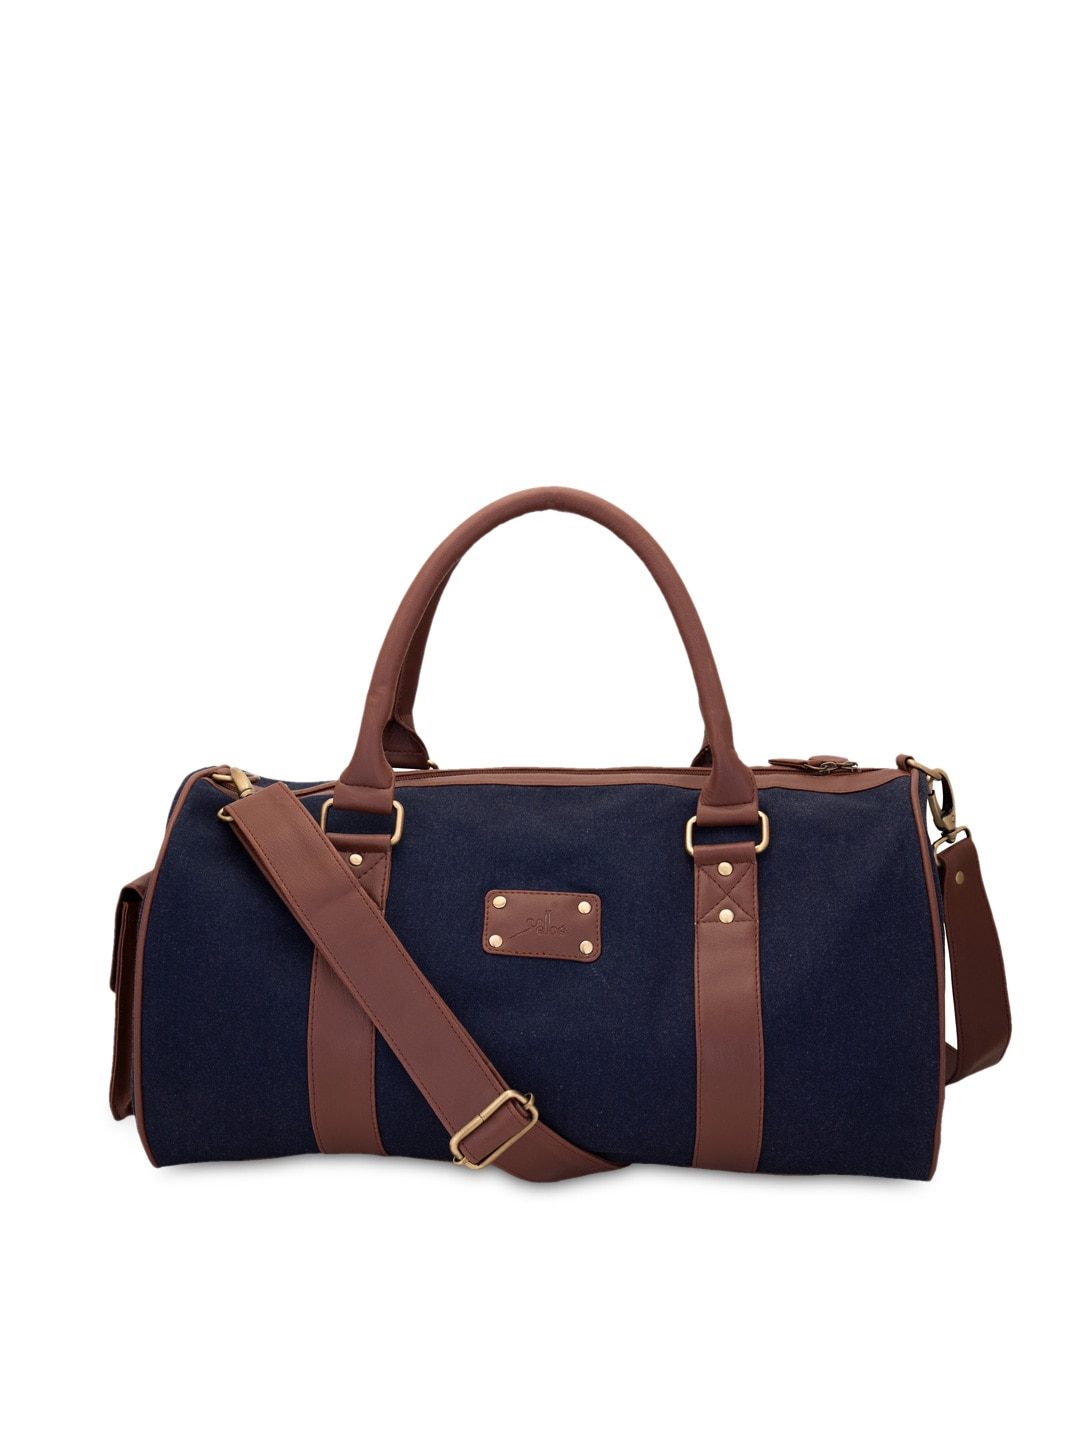 5f5ec8fe6248 Men s Duffle Bags - Buy Duffle Bags for Men Online in India